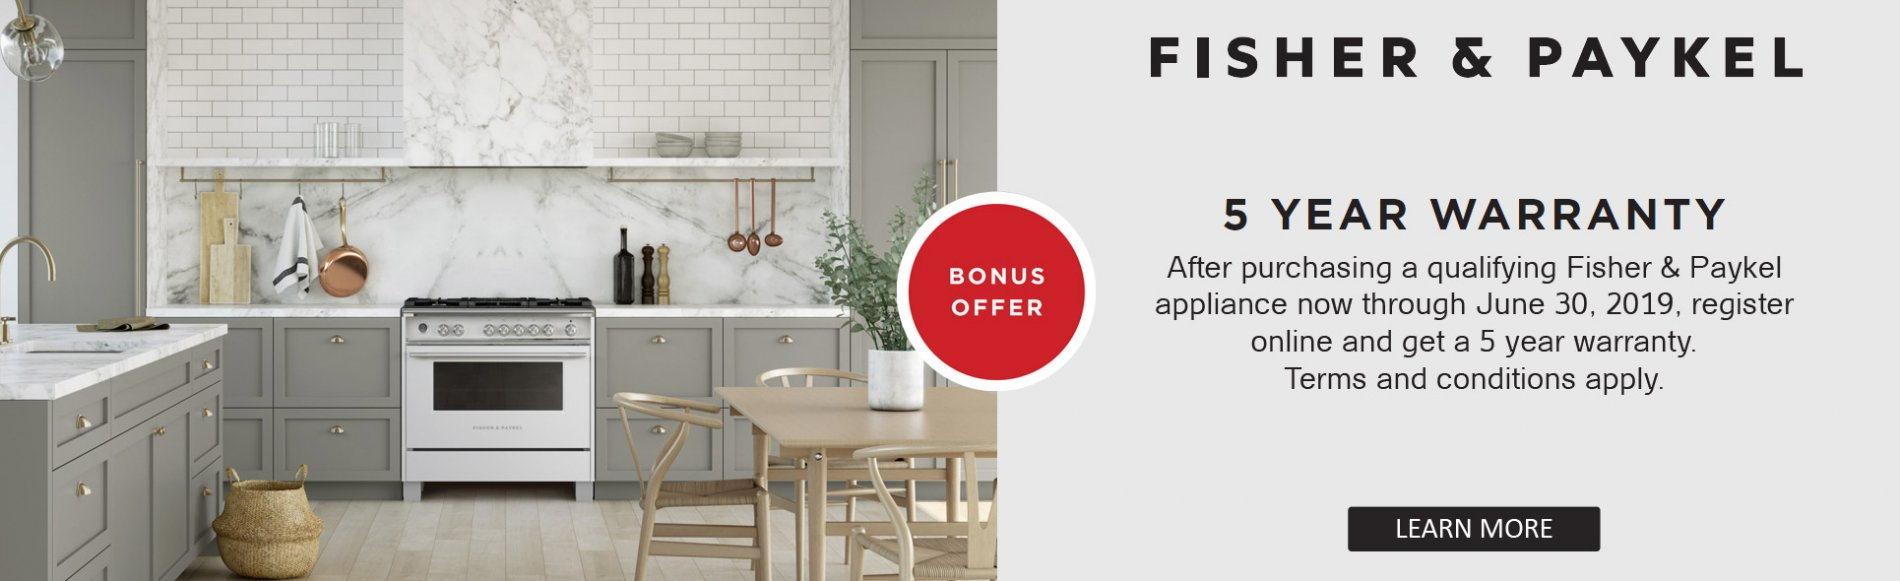 Fisher & Paykel 5 Year warranty